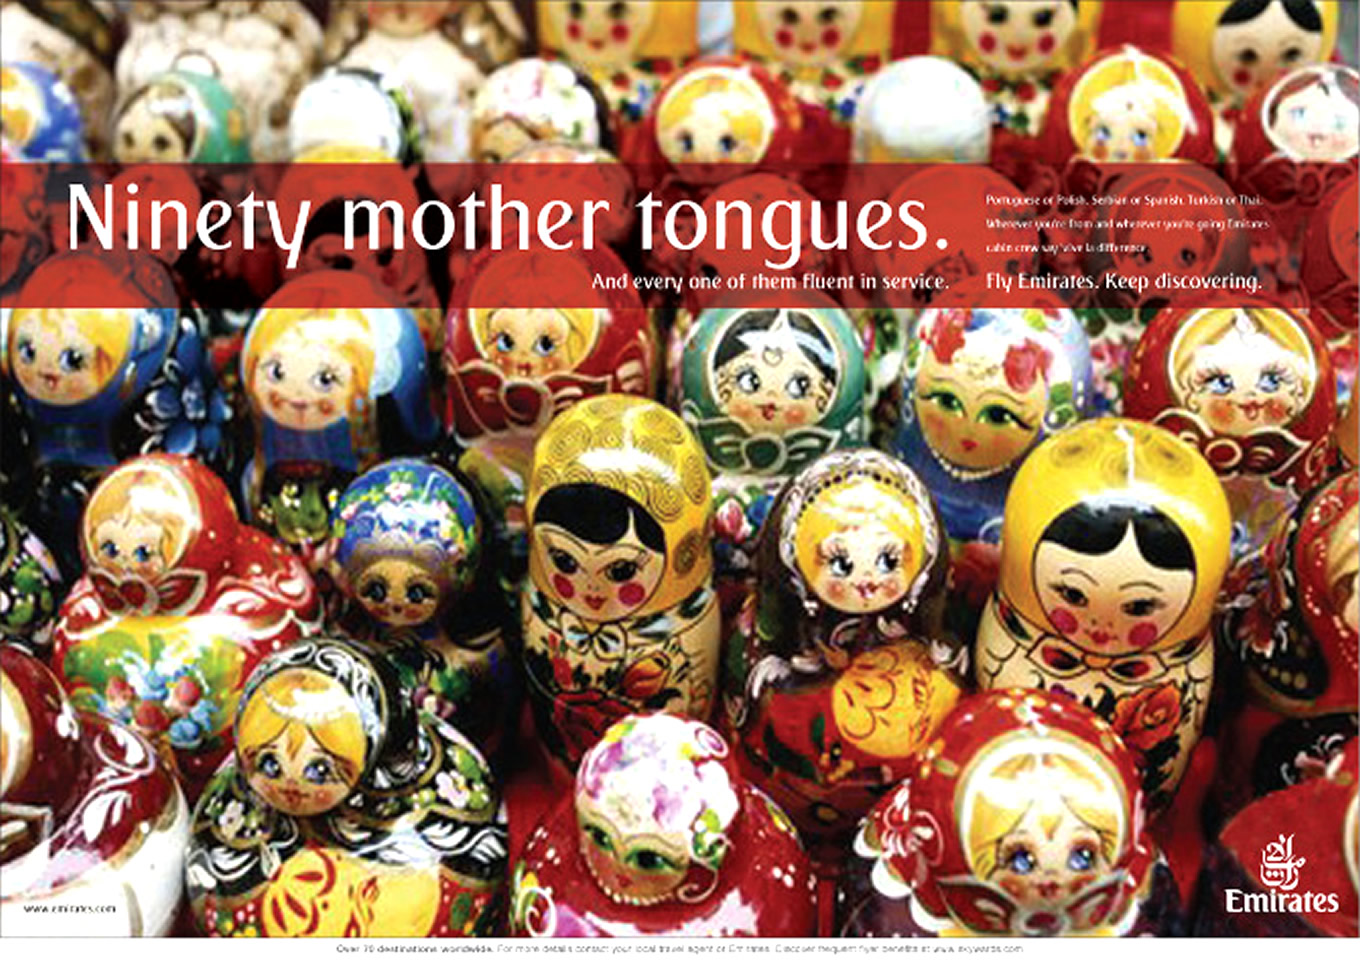 Ninety Mother Tongues Print Advertising, Keep Discovering Marketing Campaign by Emirates